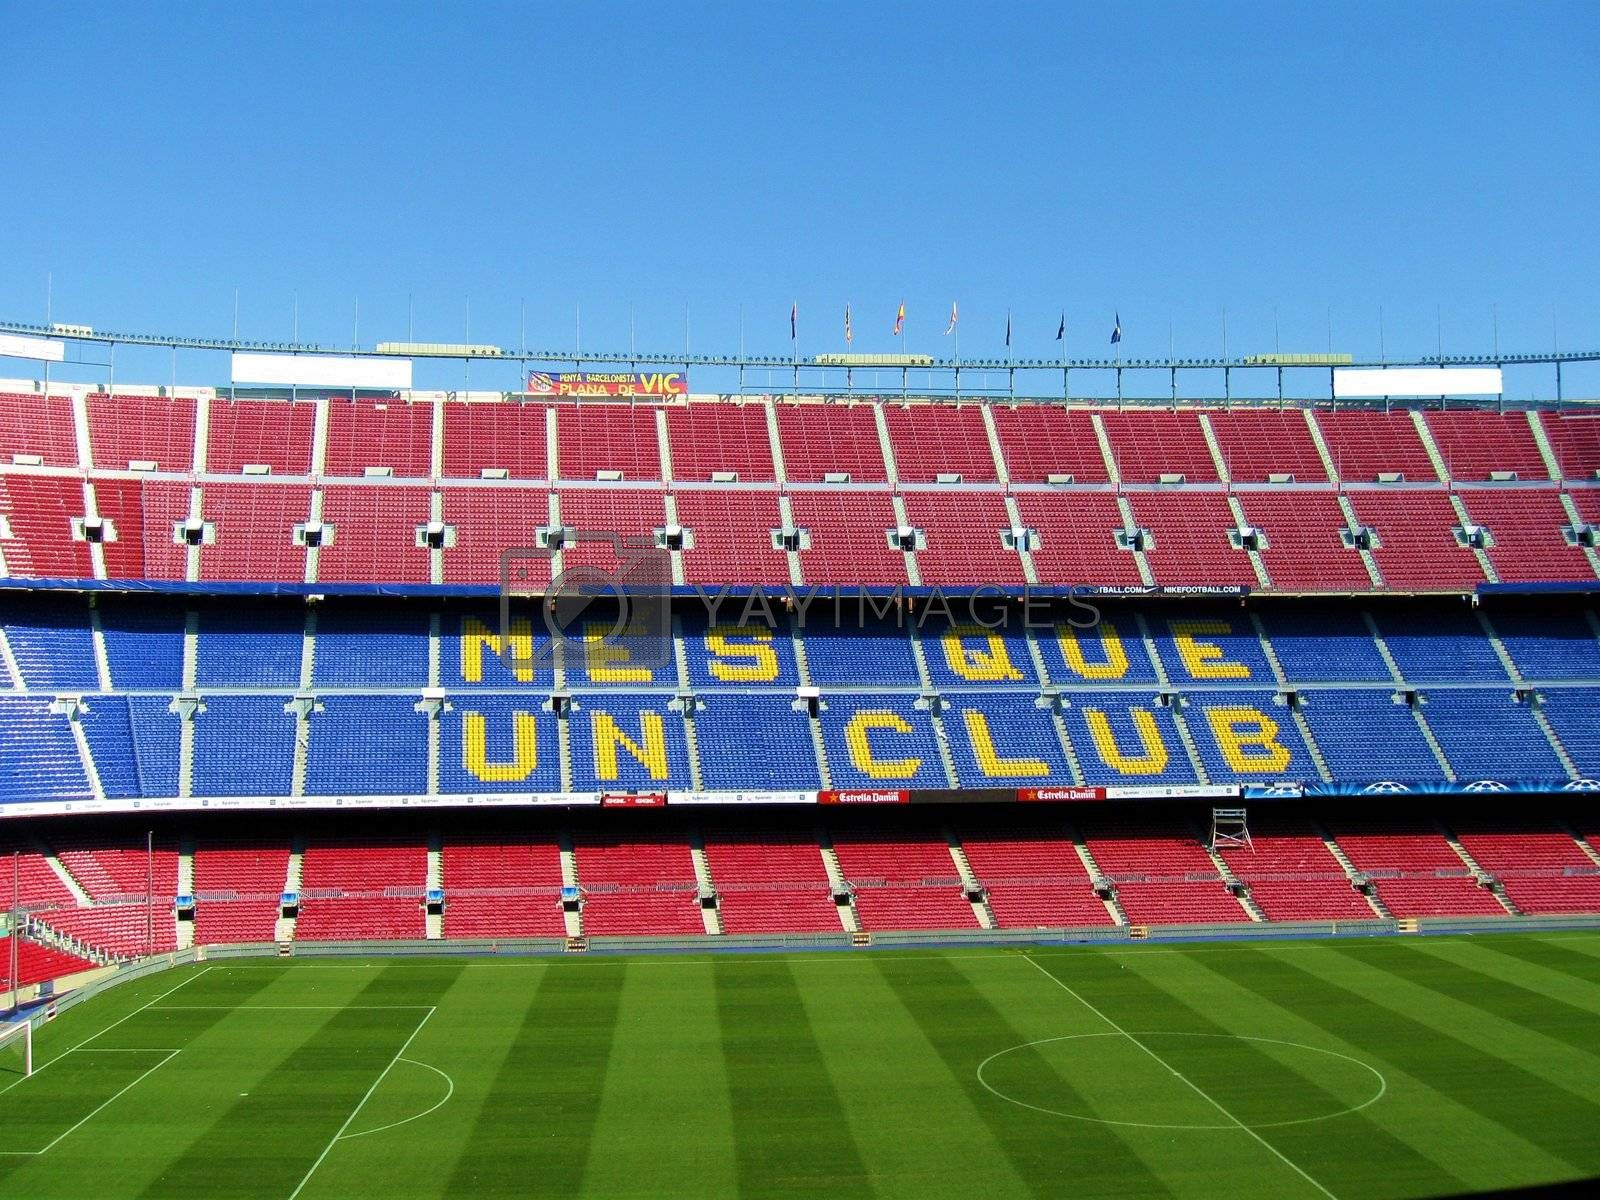 Seats at the soccer stadium in Barcelona